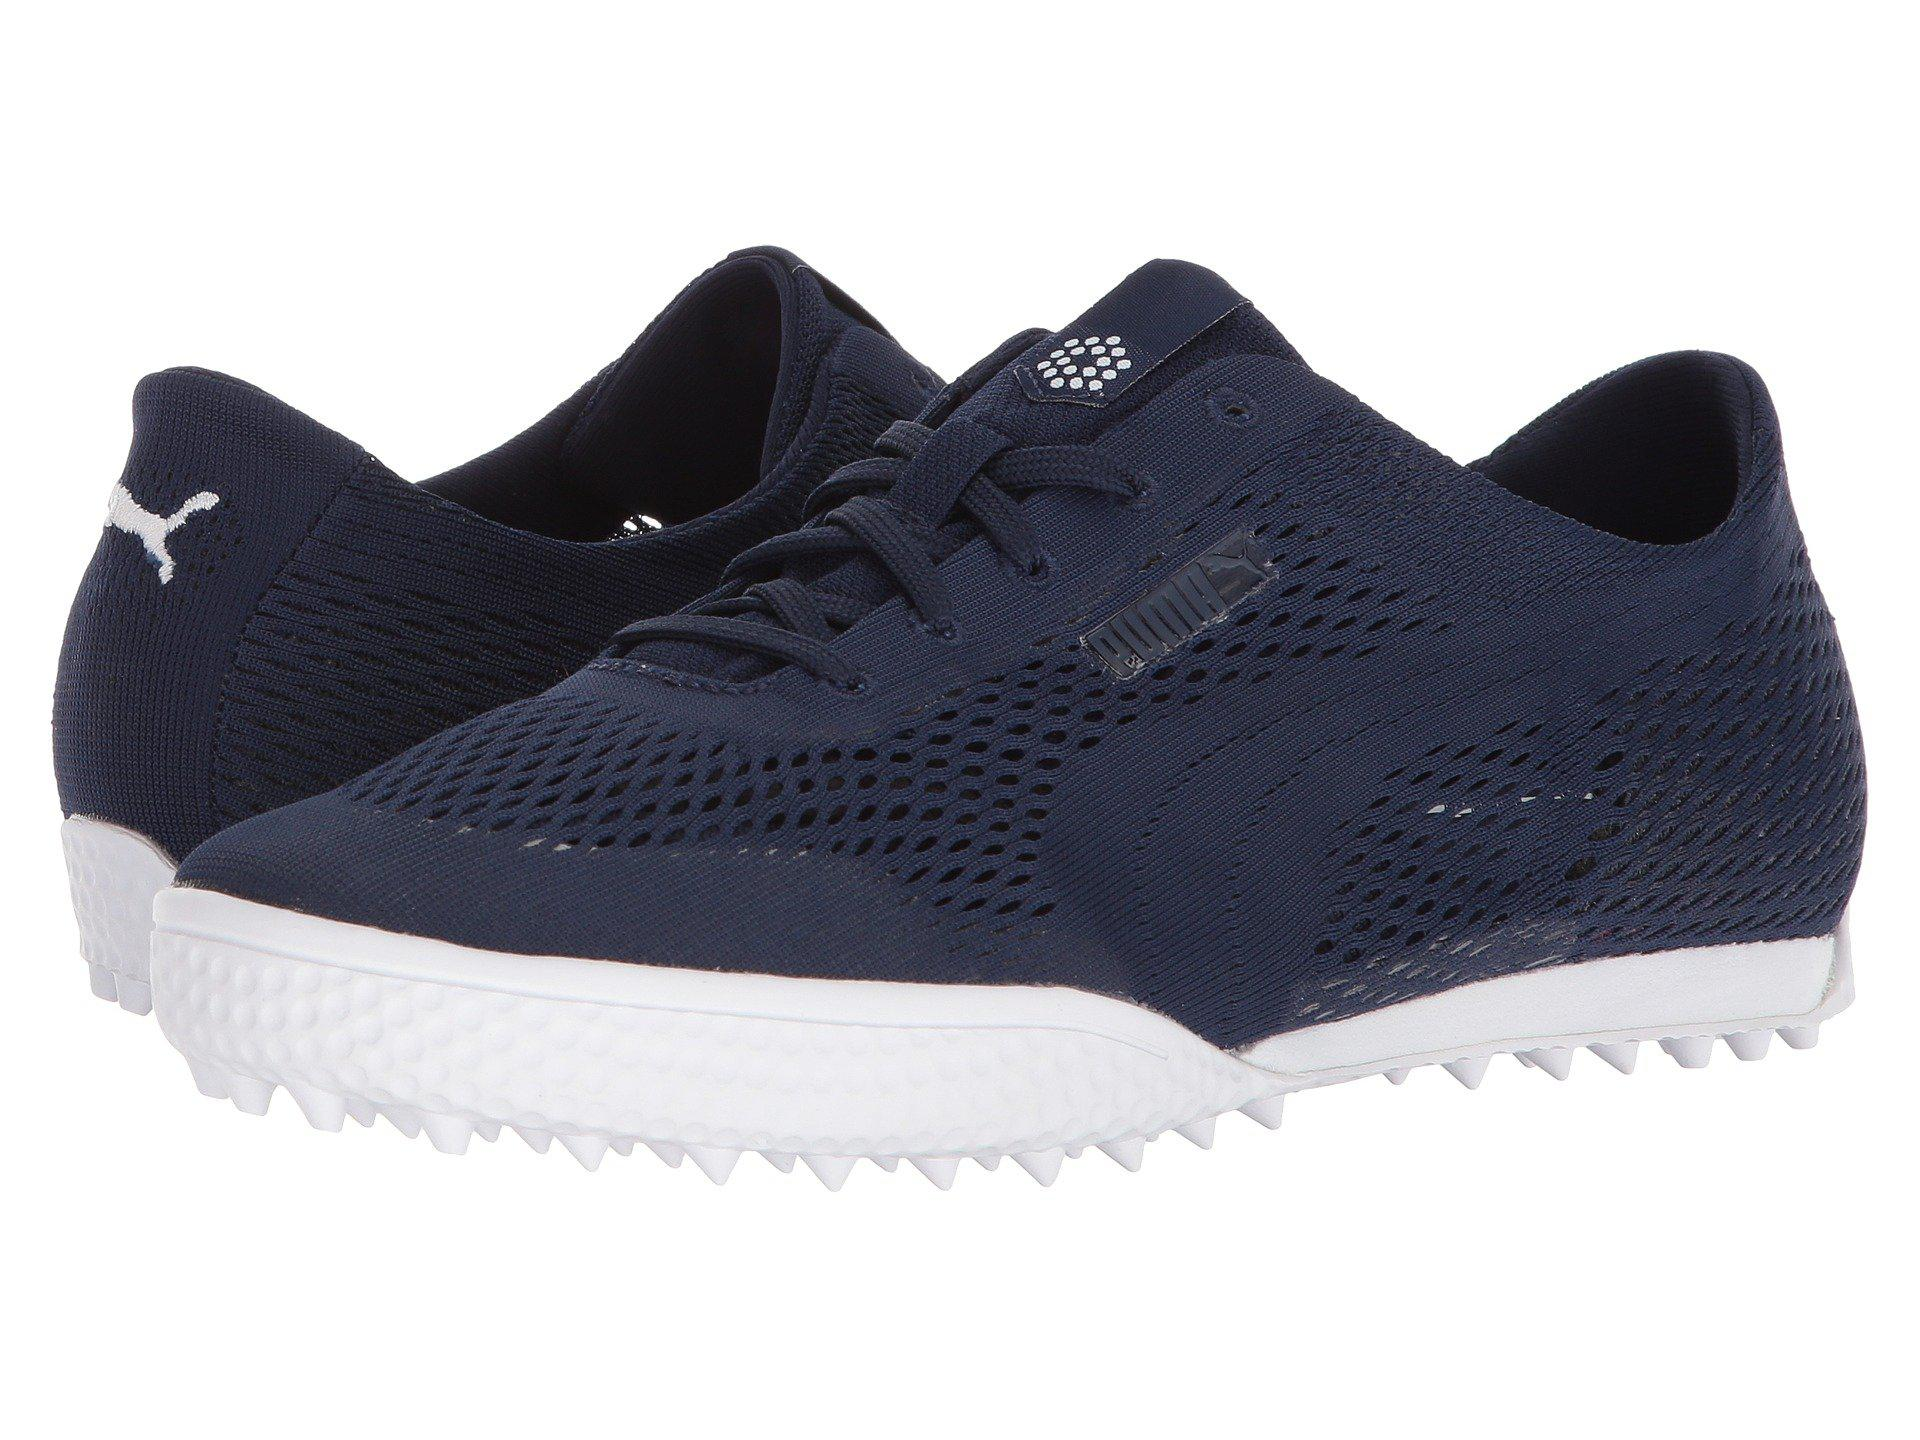 651332ce080 Lyst - PUMA Monolite Cat Woven (peacoat peacoat) Women s Golf Shoes ...